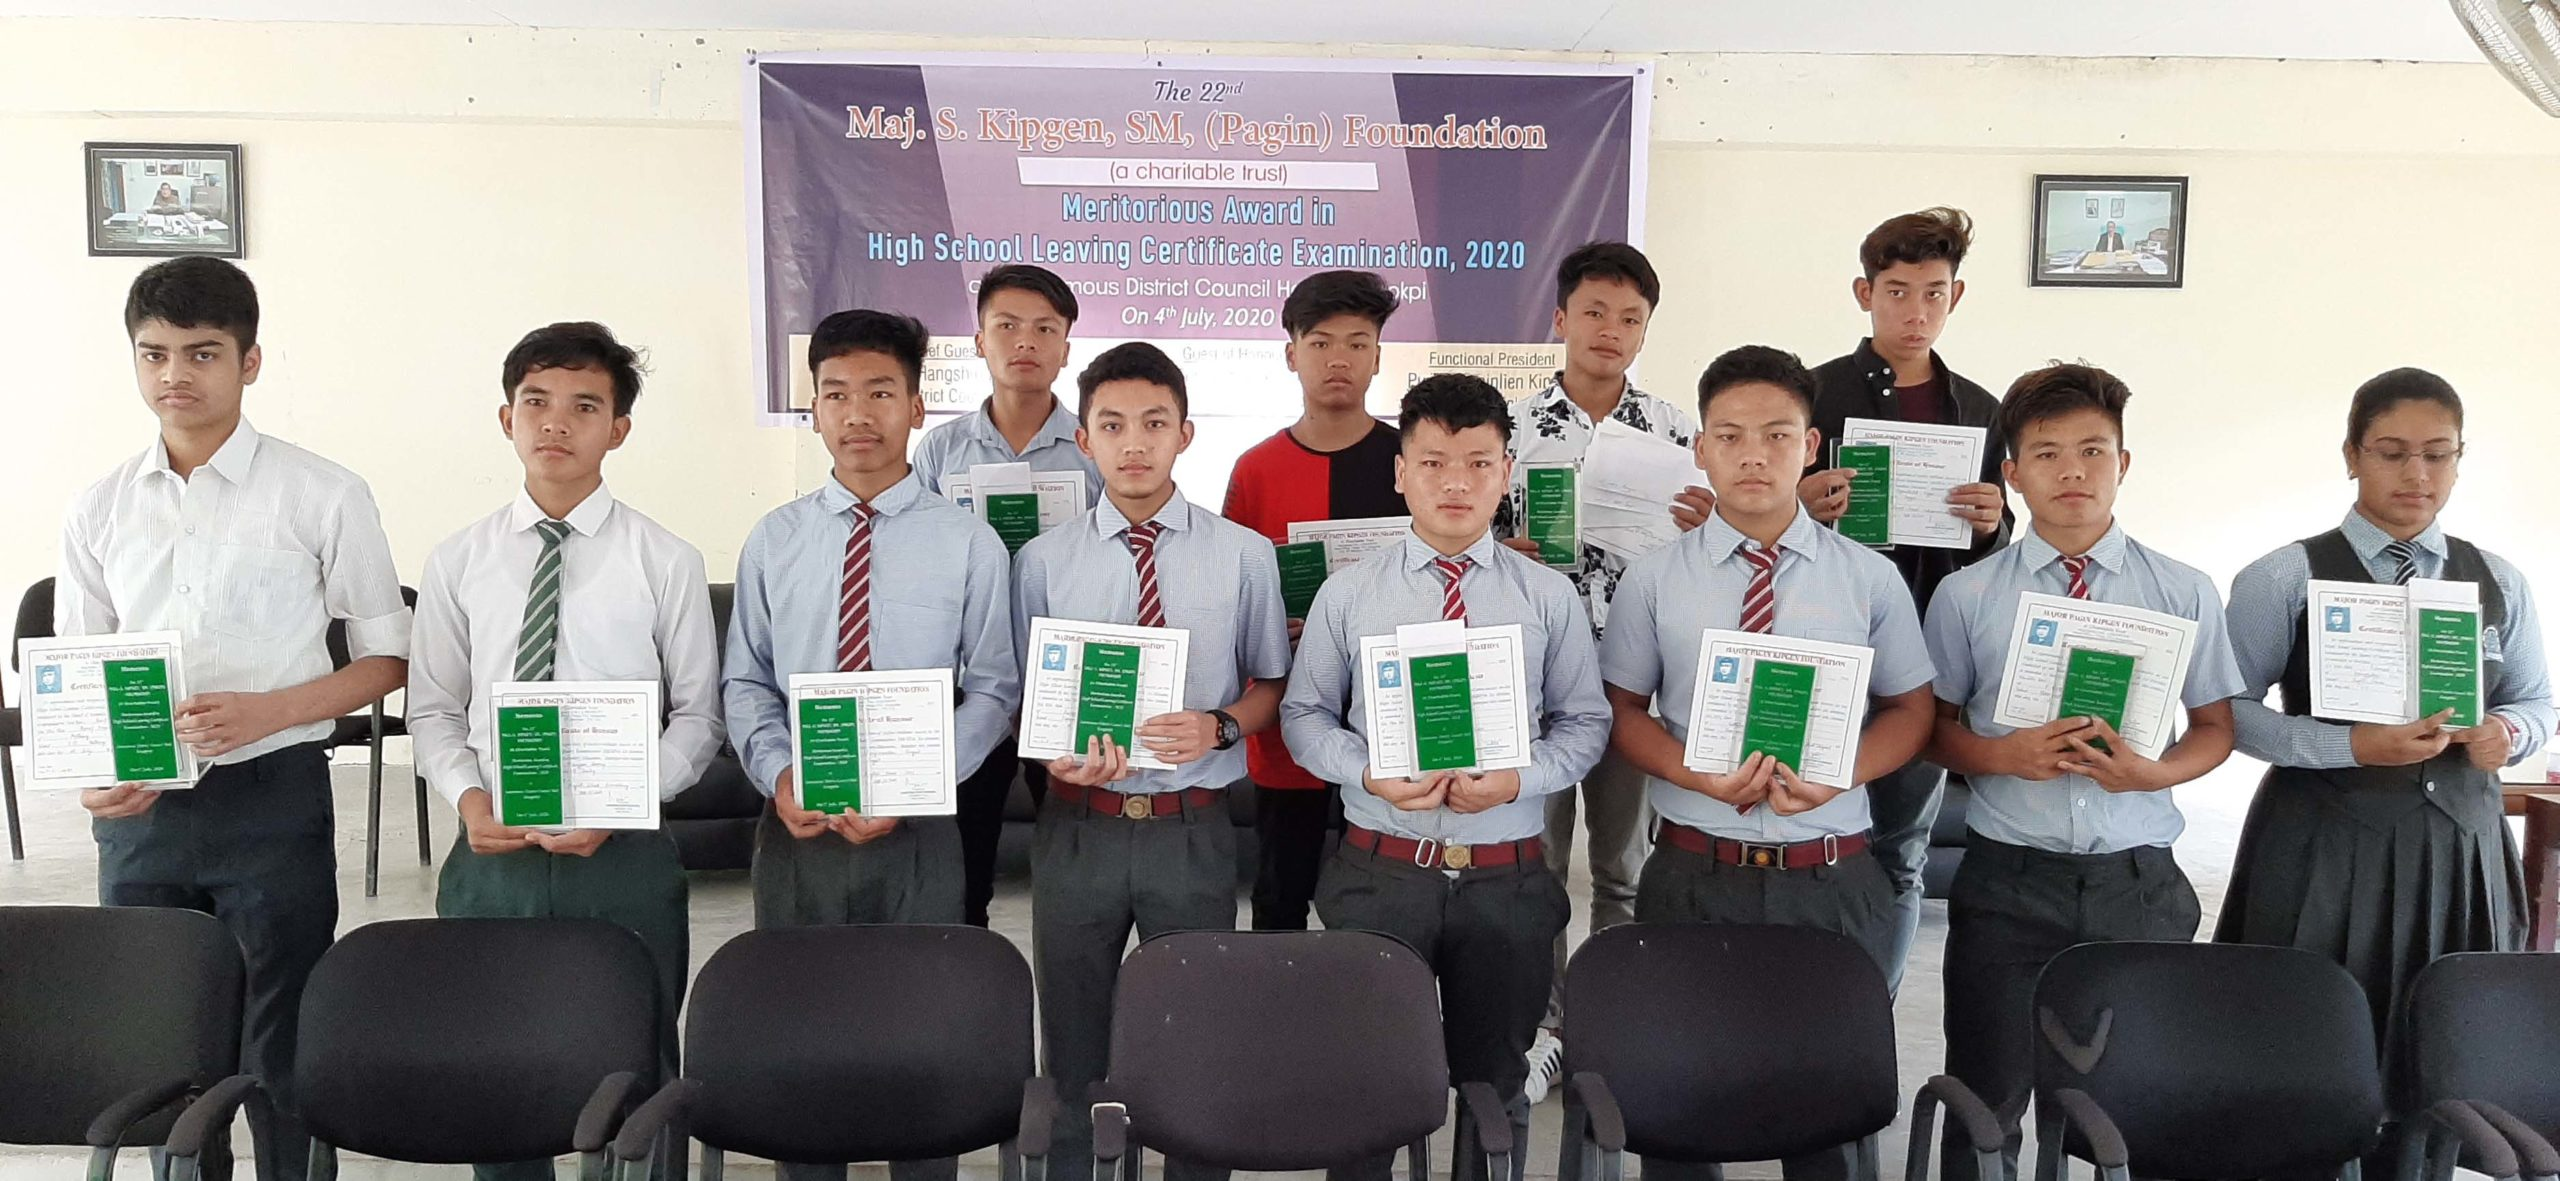 'Dream big, have vision': MPKFCT chairman to meritorious students